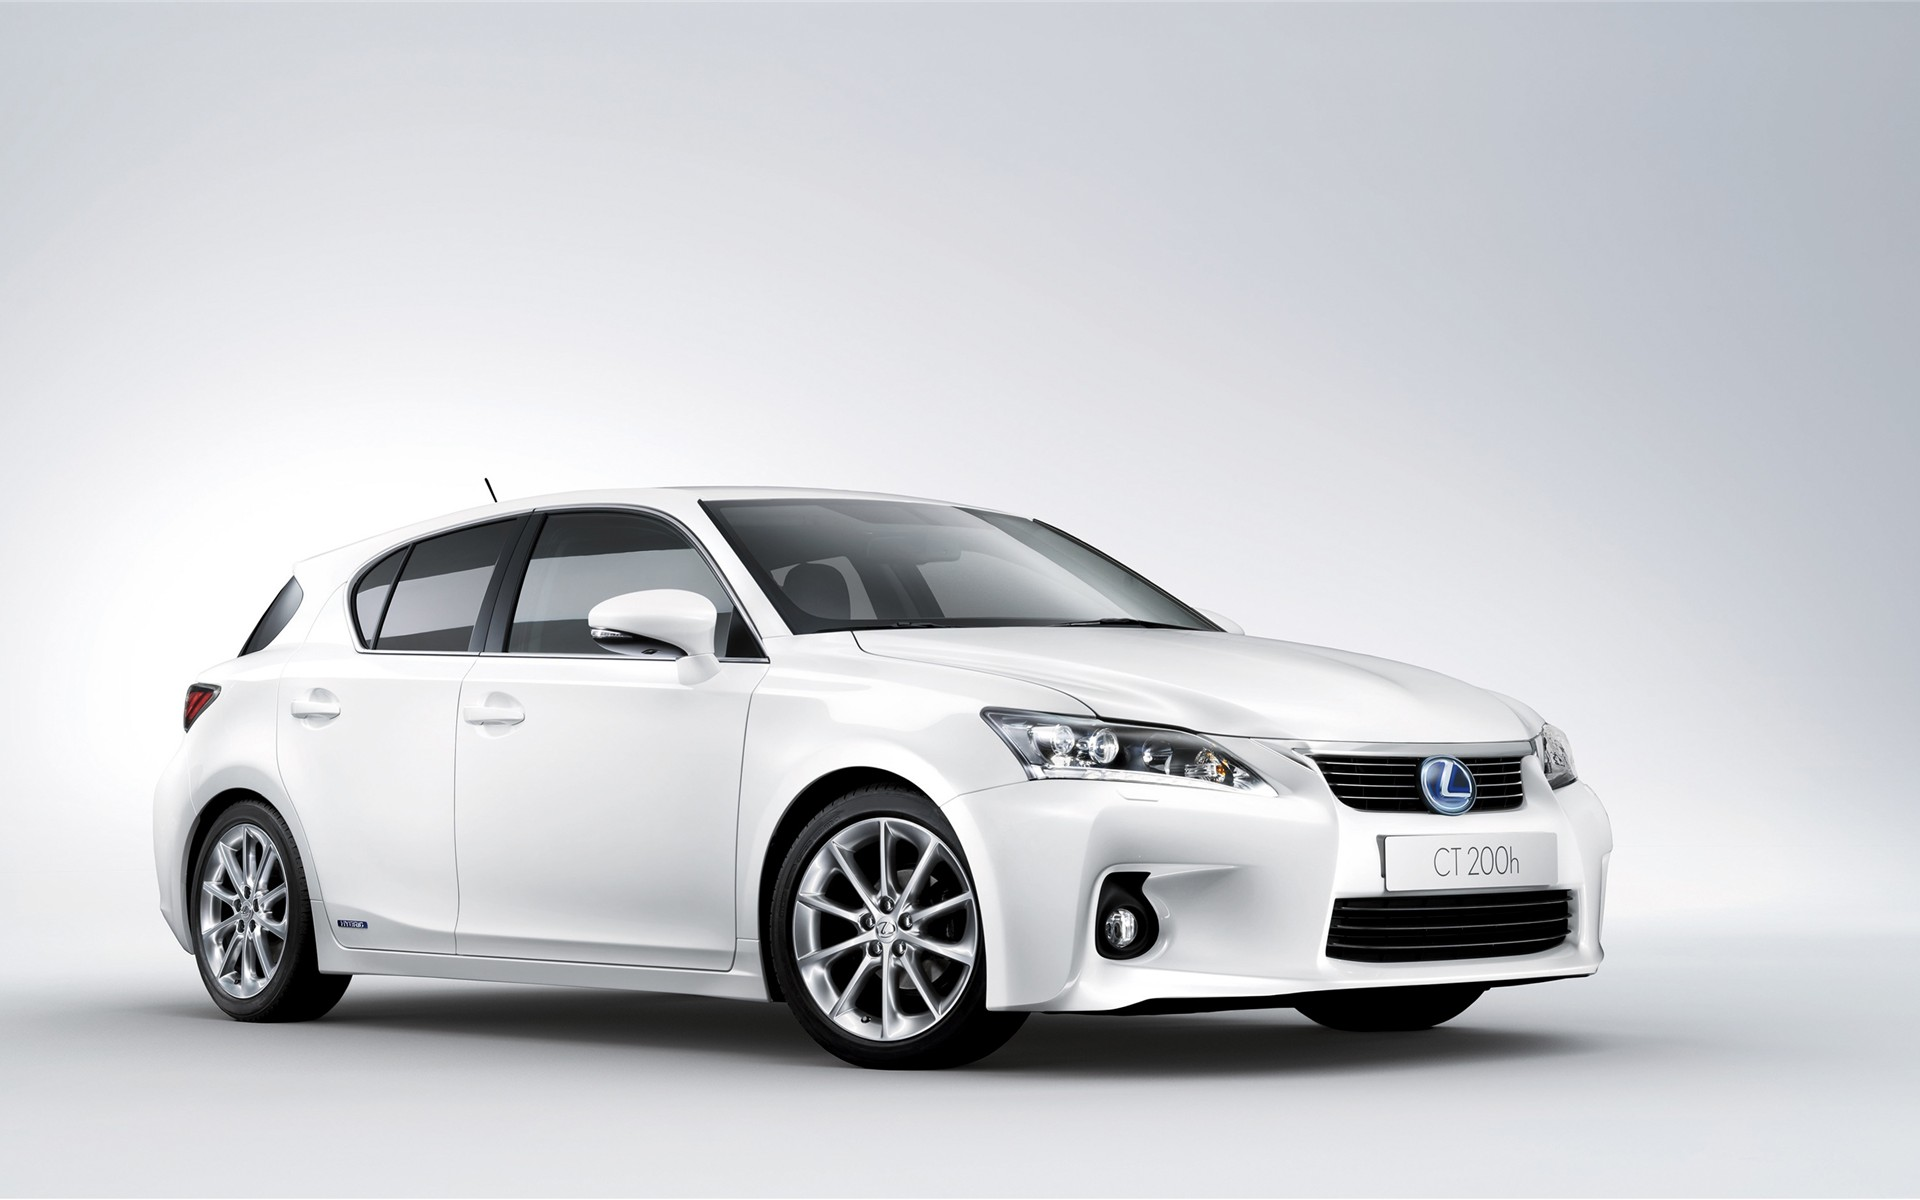 2011 lexus ct 200h widescreen wallpapers (1)